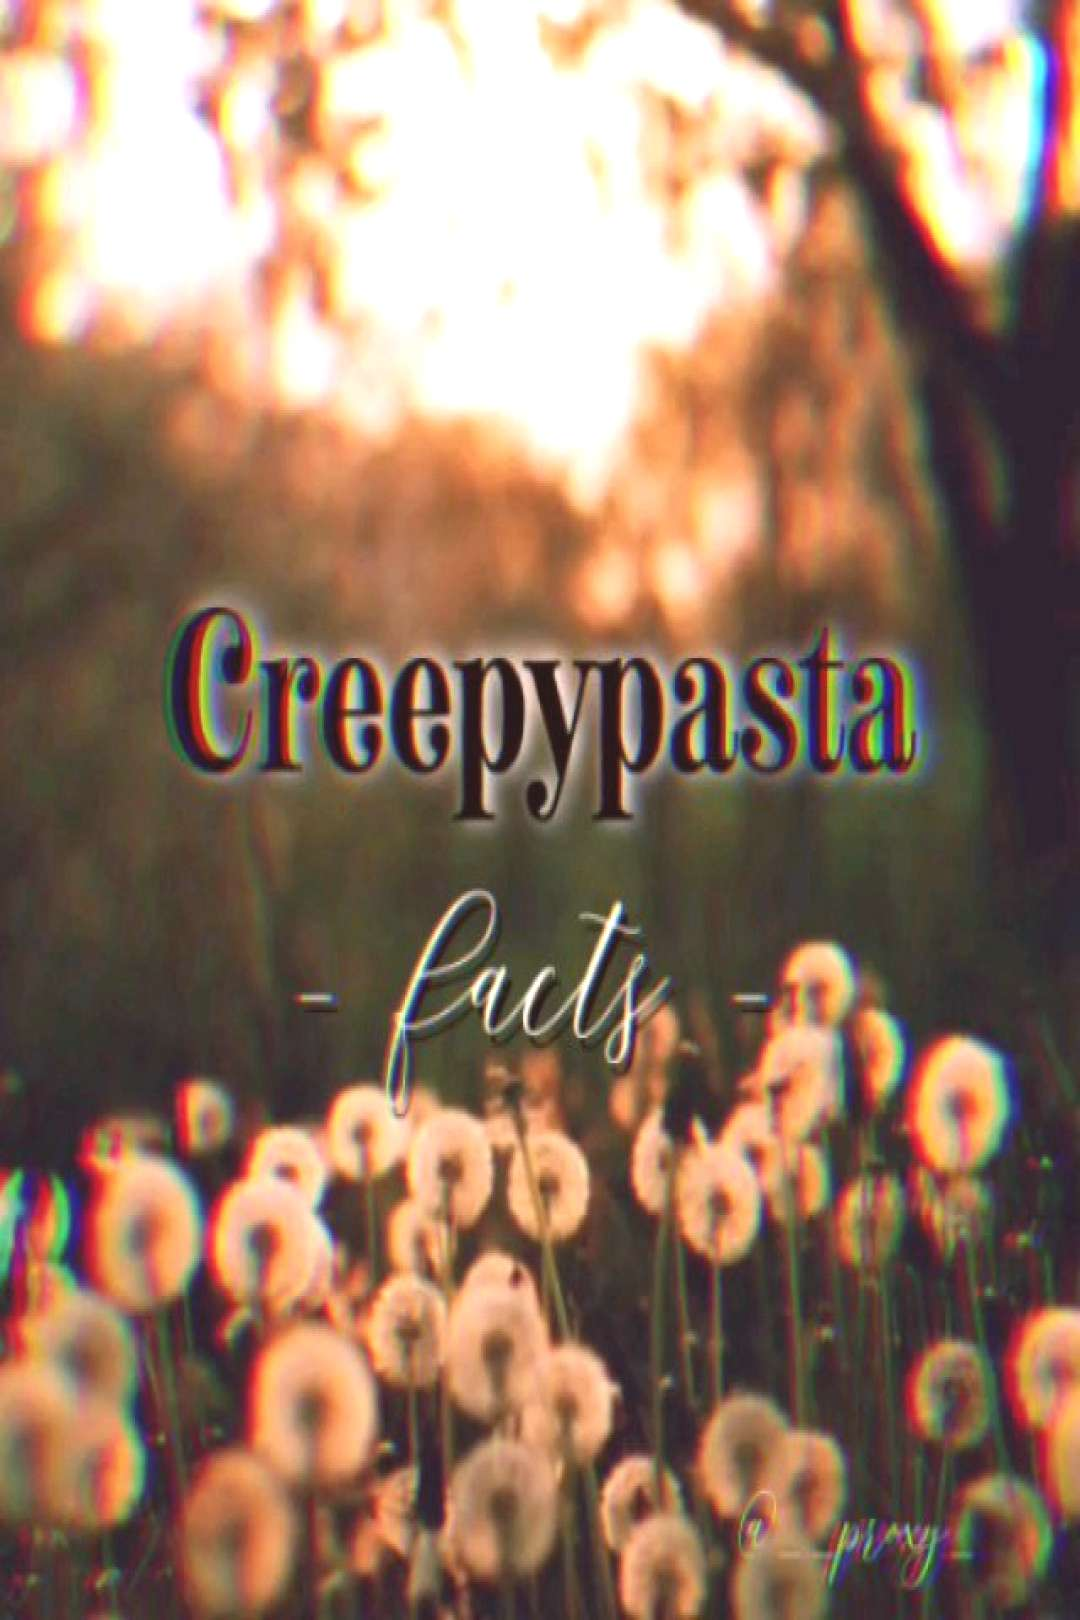 CreepyPasta - Facts - For today I have prepared some other intere